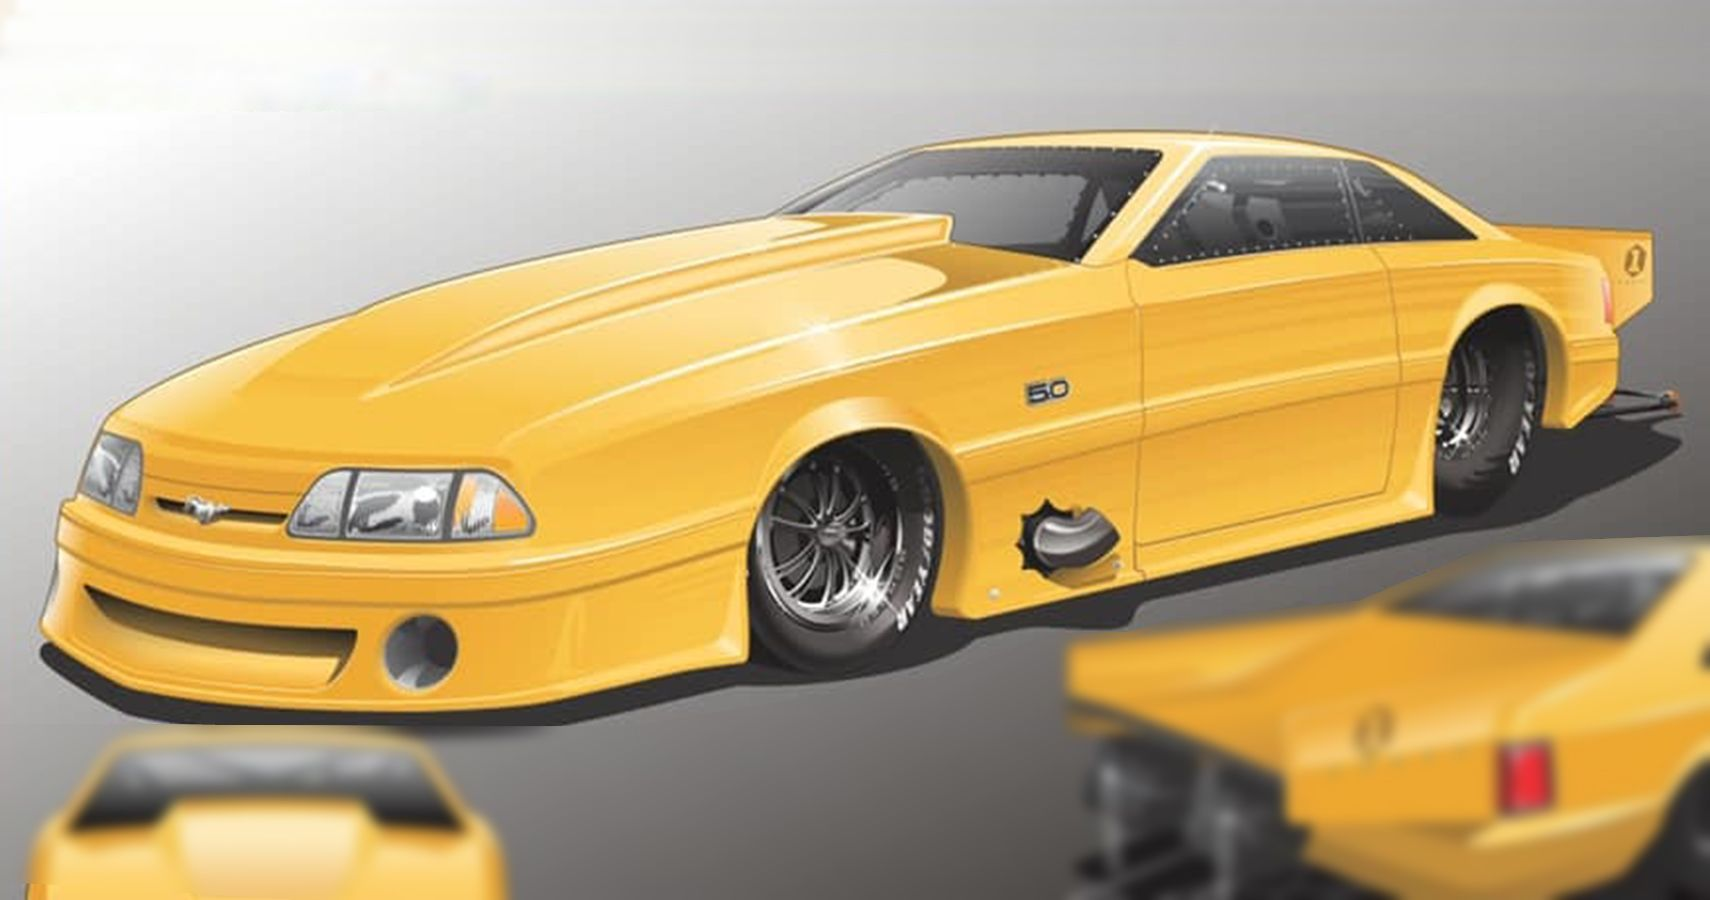 First Carbon Fox Body Mustang GT Pro Mod Body Now Available From Cynergy And Schoneck